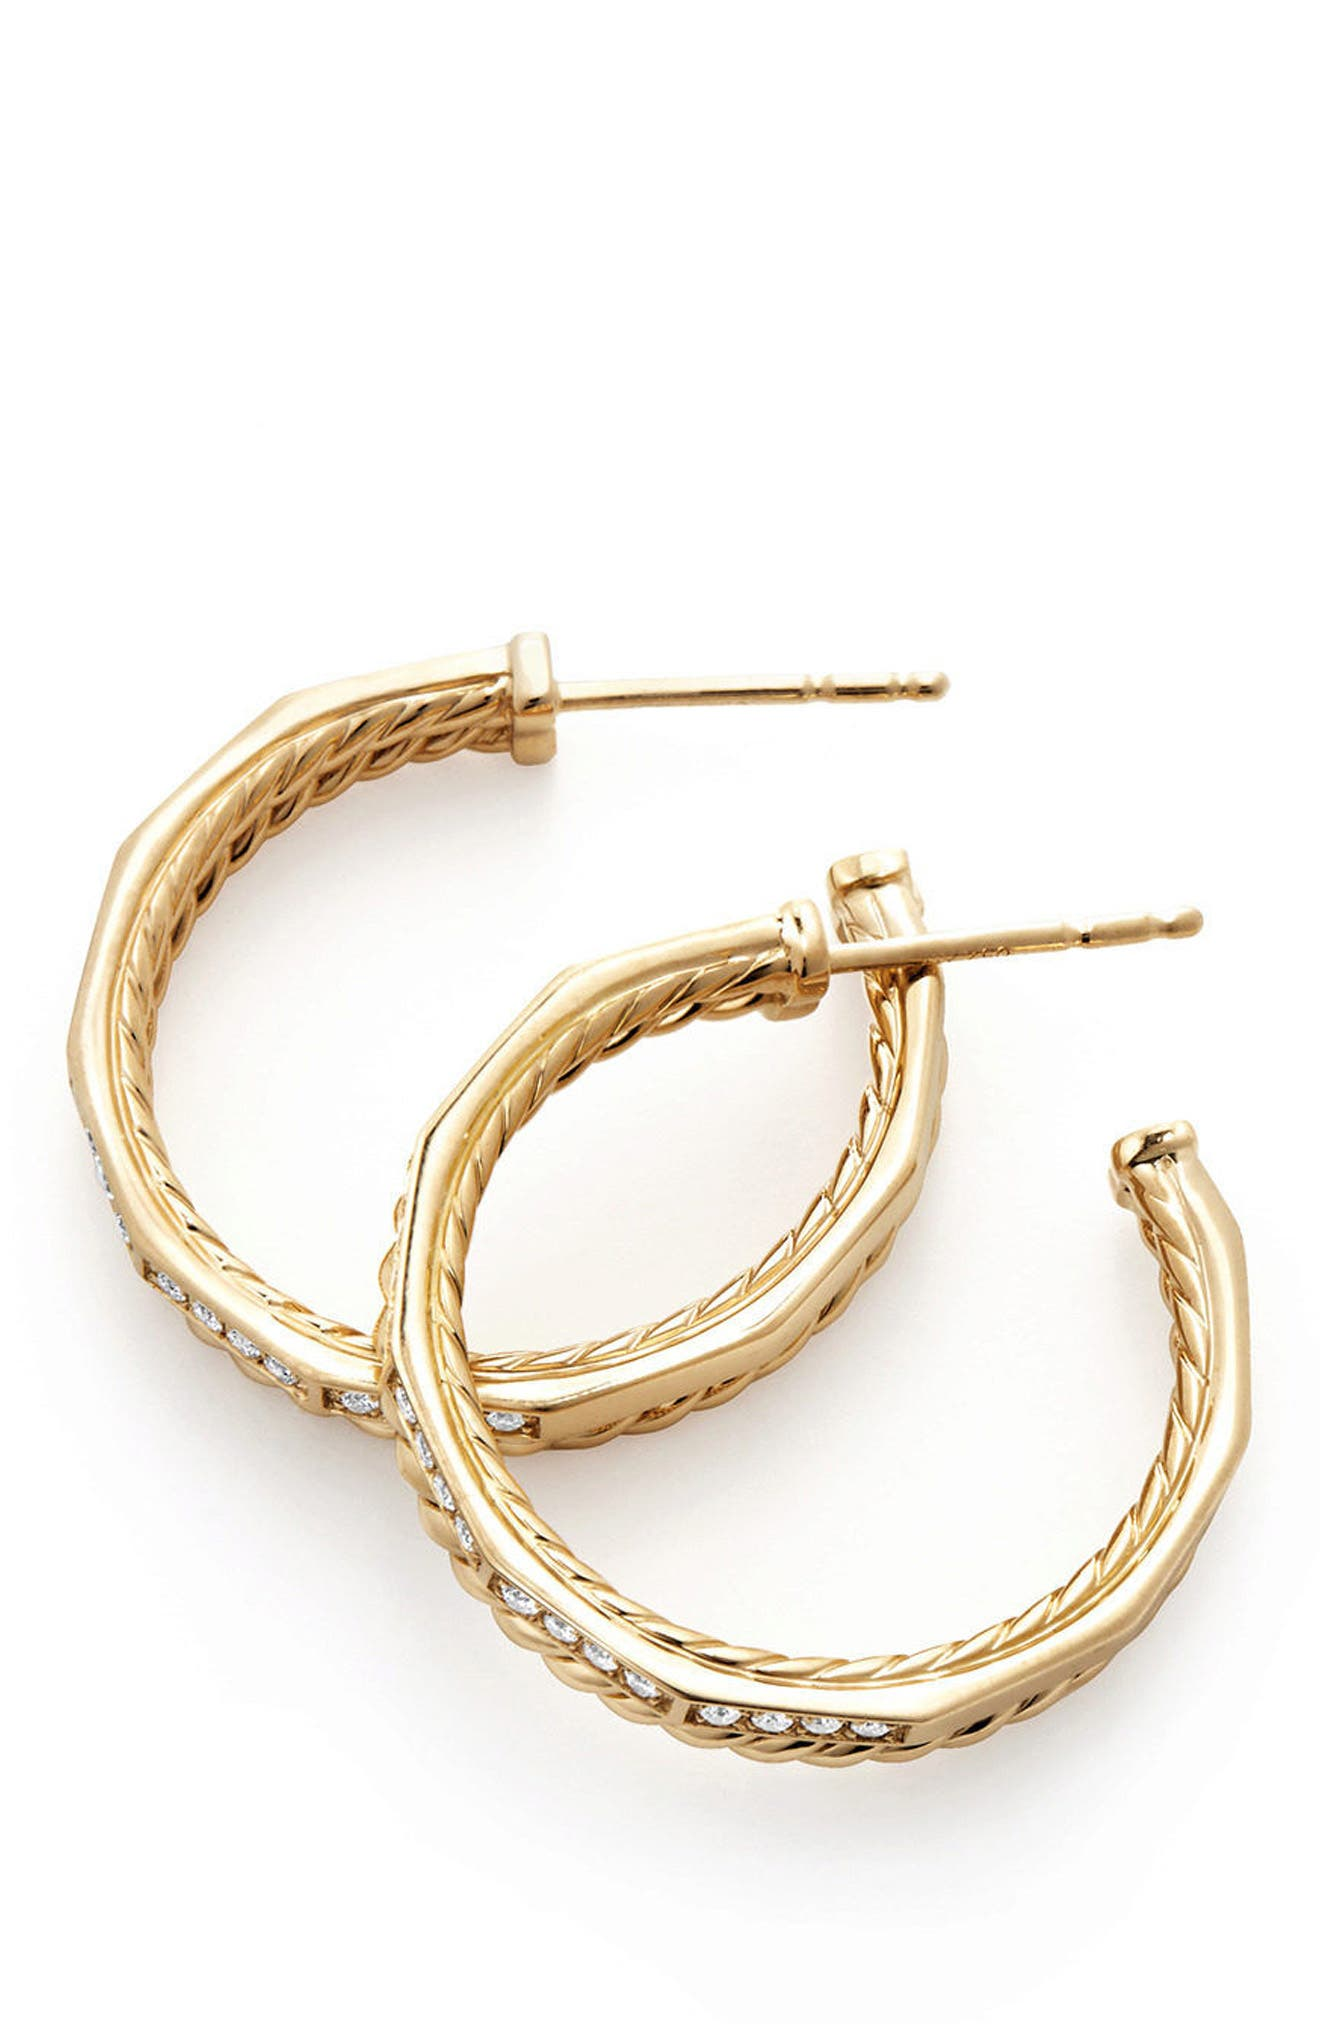 Stax Hoop Earrings with Diamonds in 18k Gold,                             Alternate thumbnail 2, color,                             YELLOW GOLD